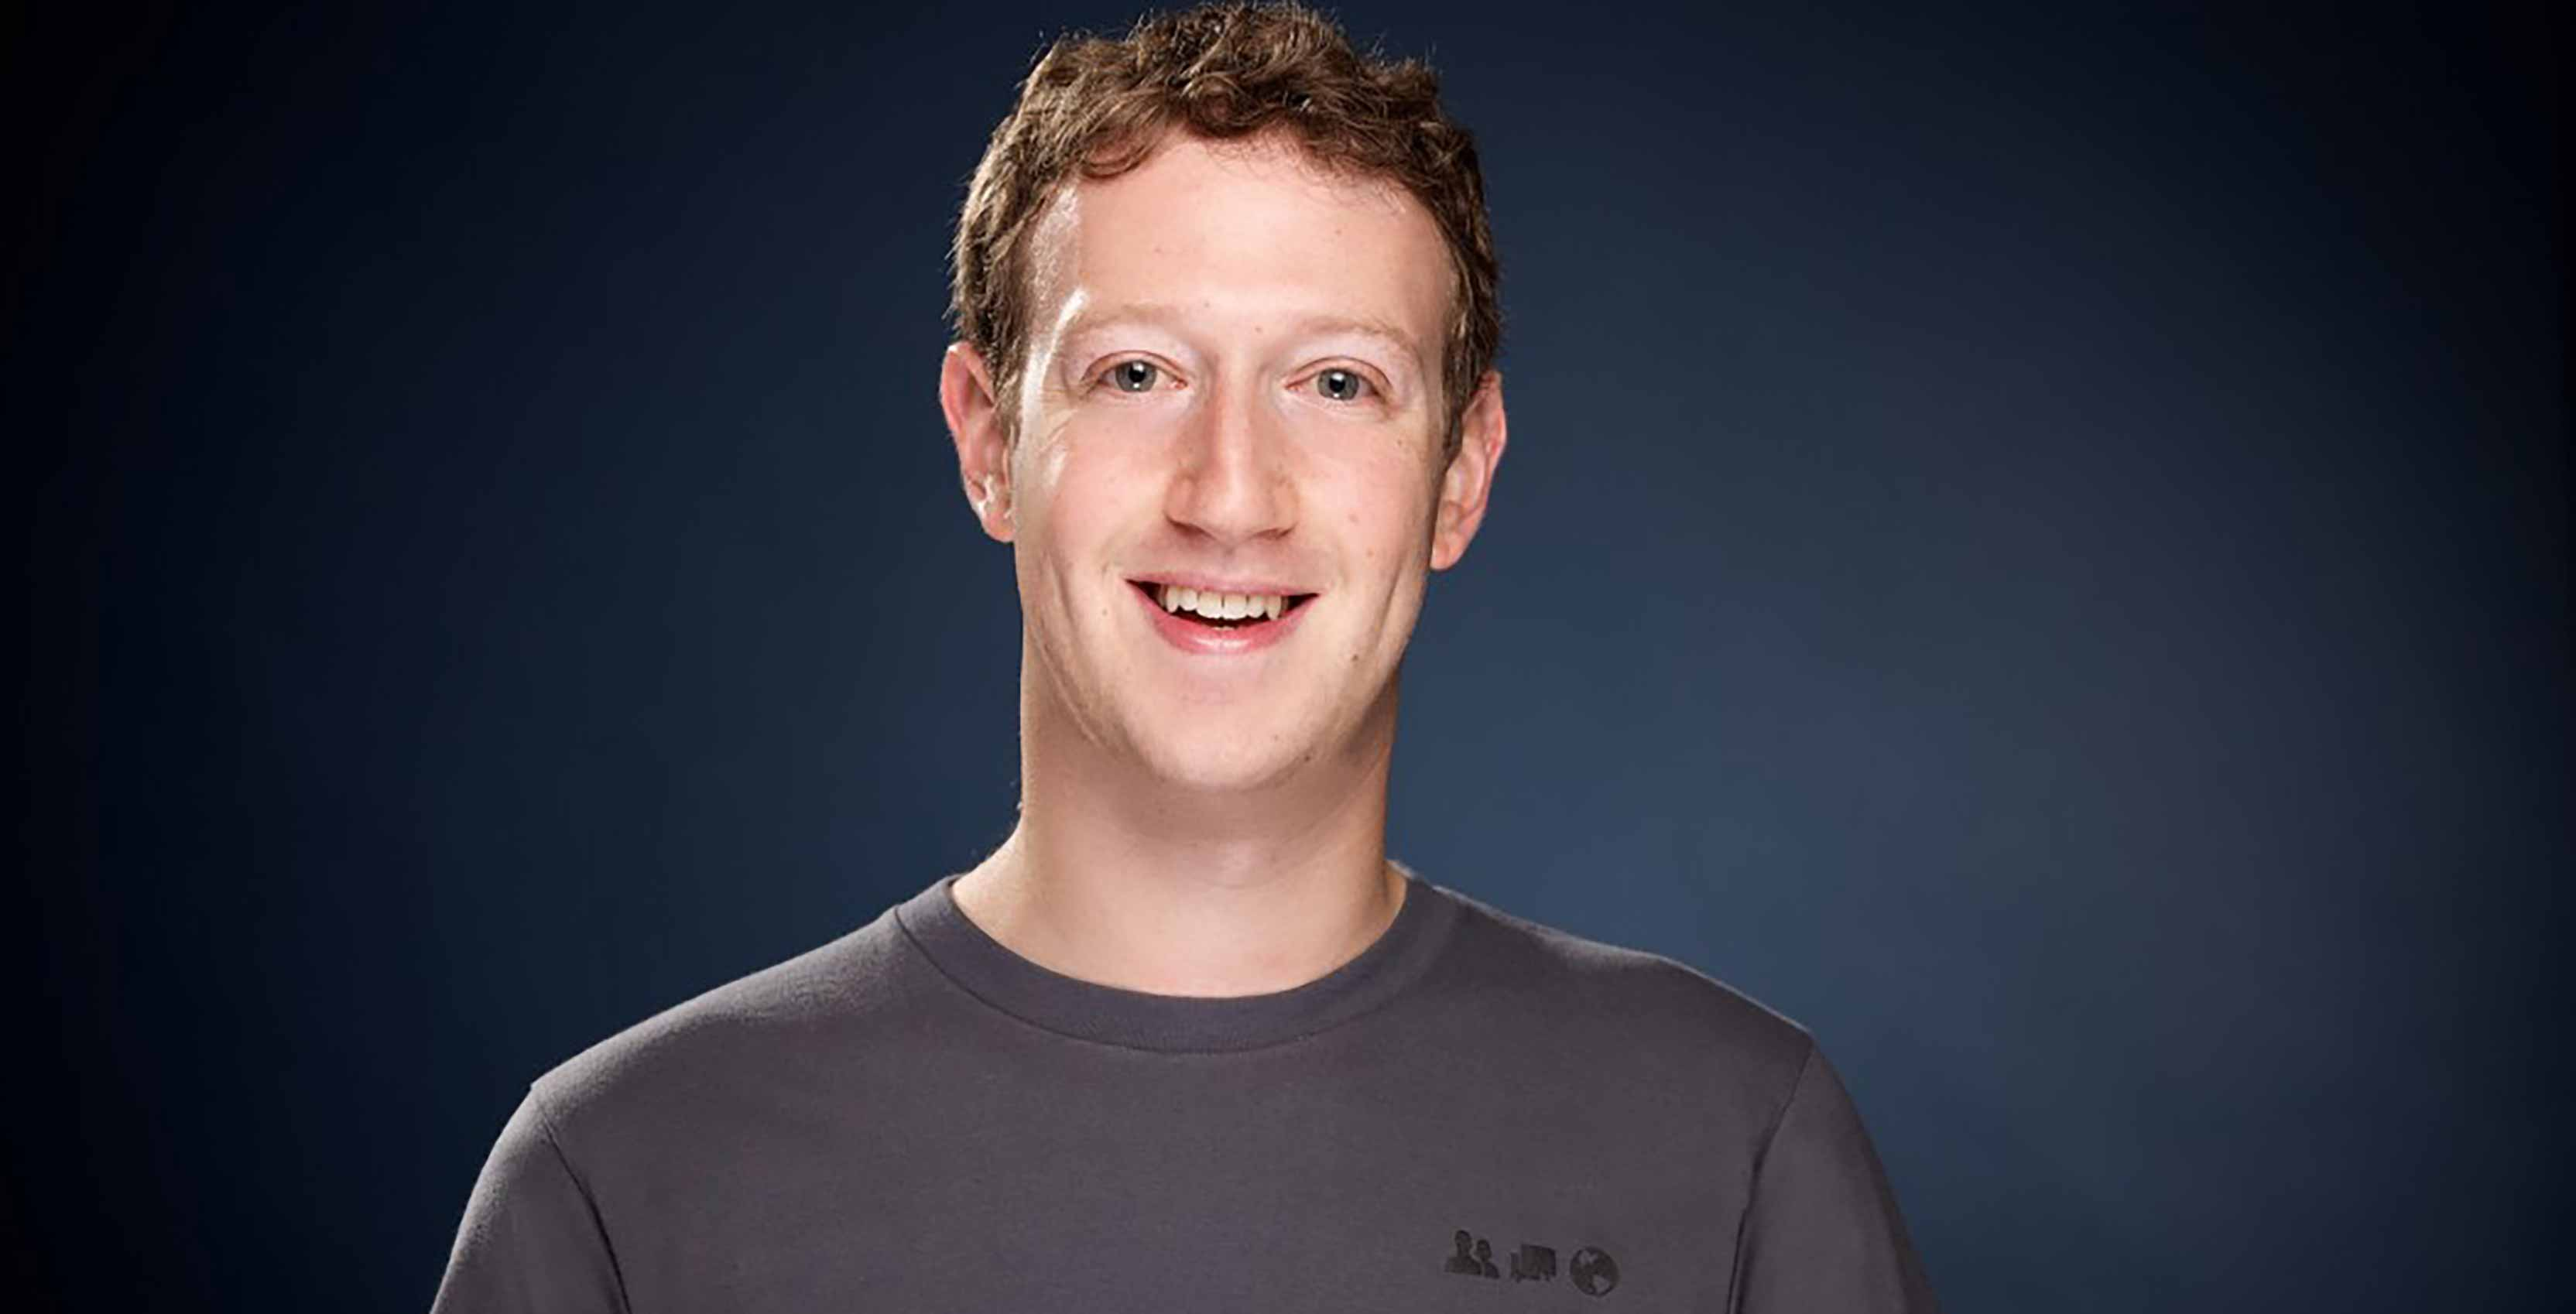 Mark Zuckerberg headshot